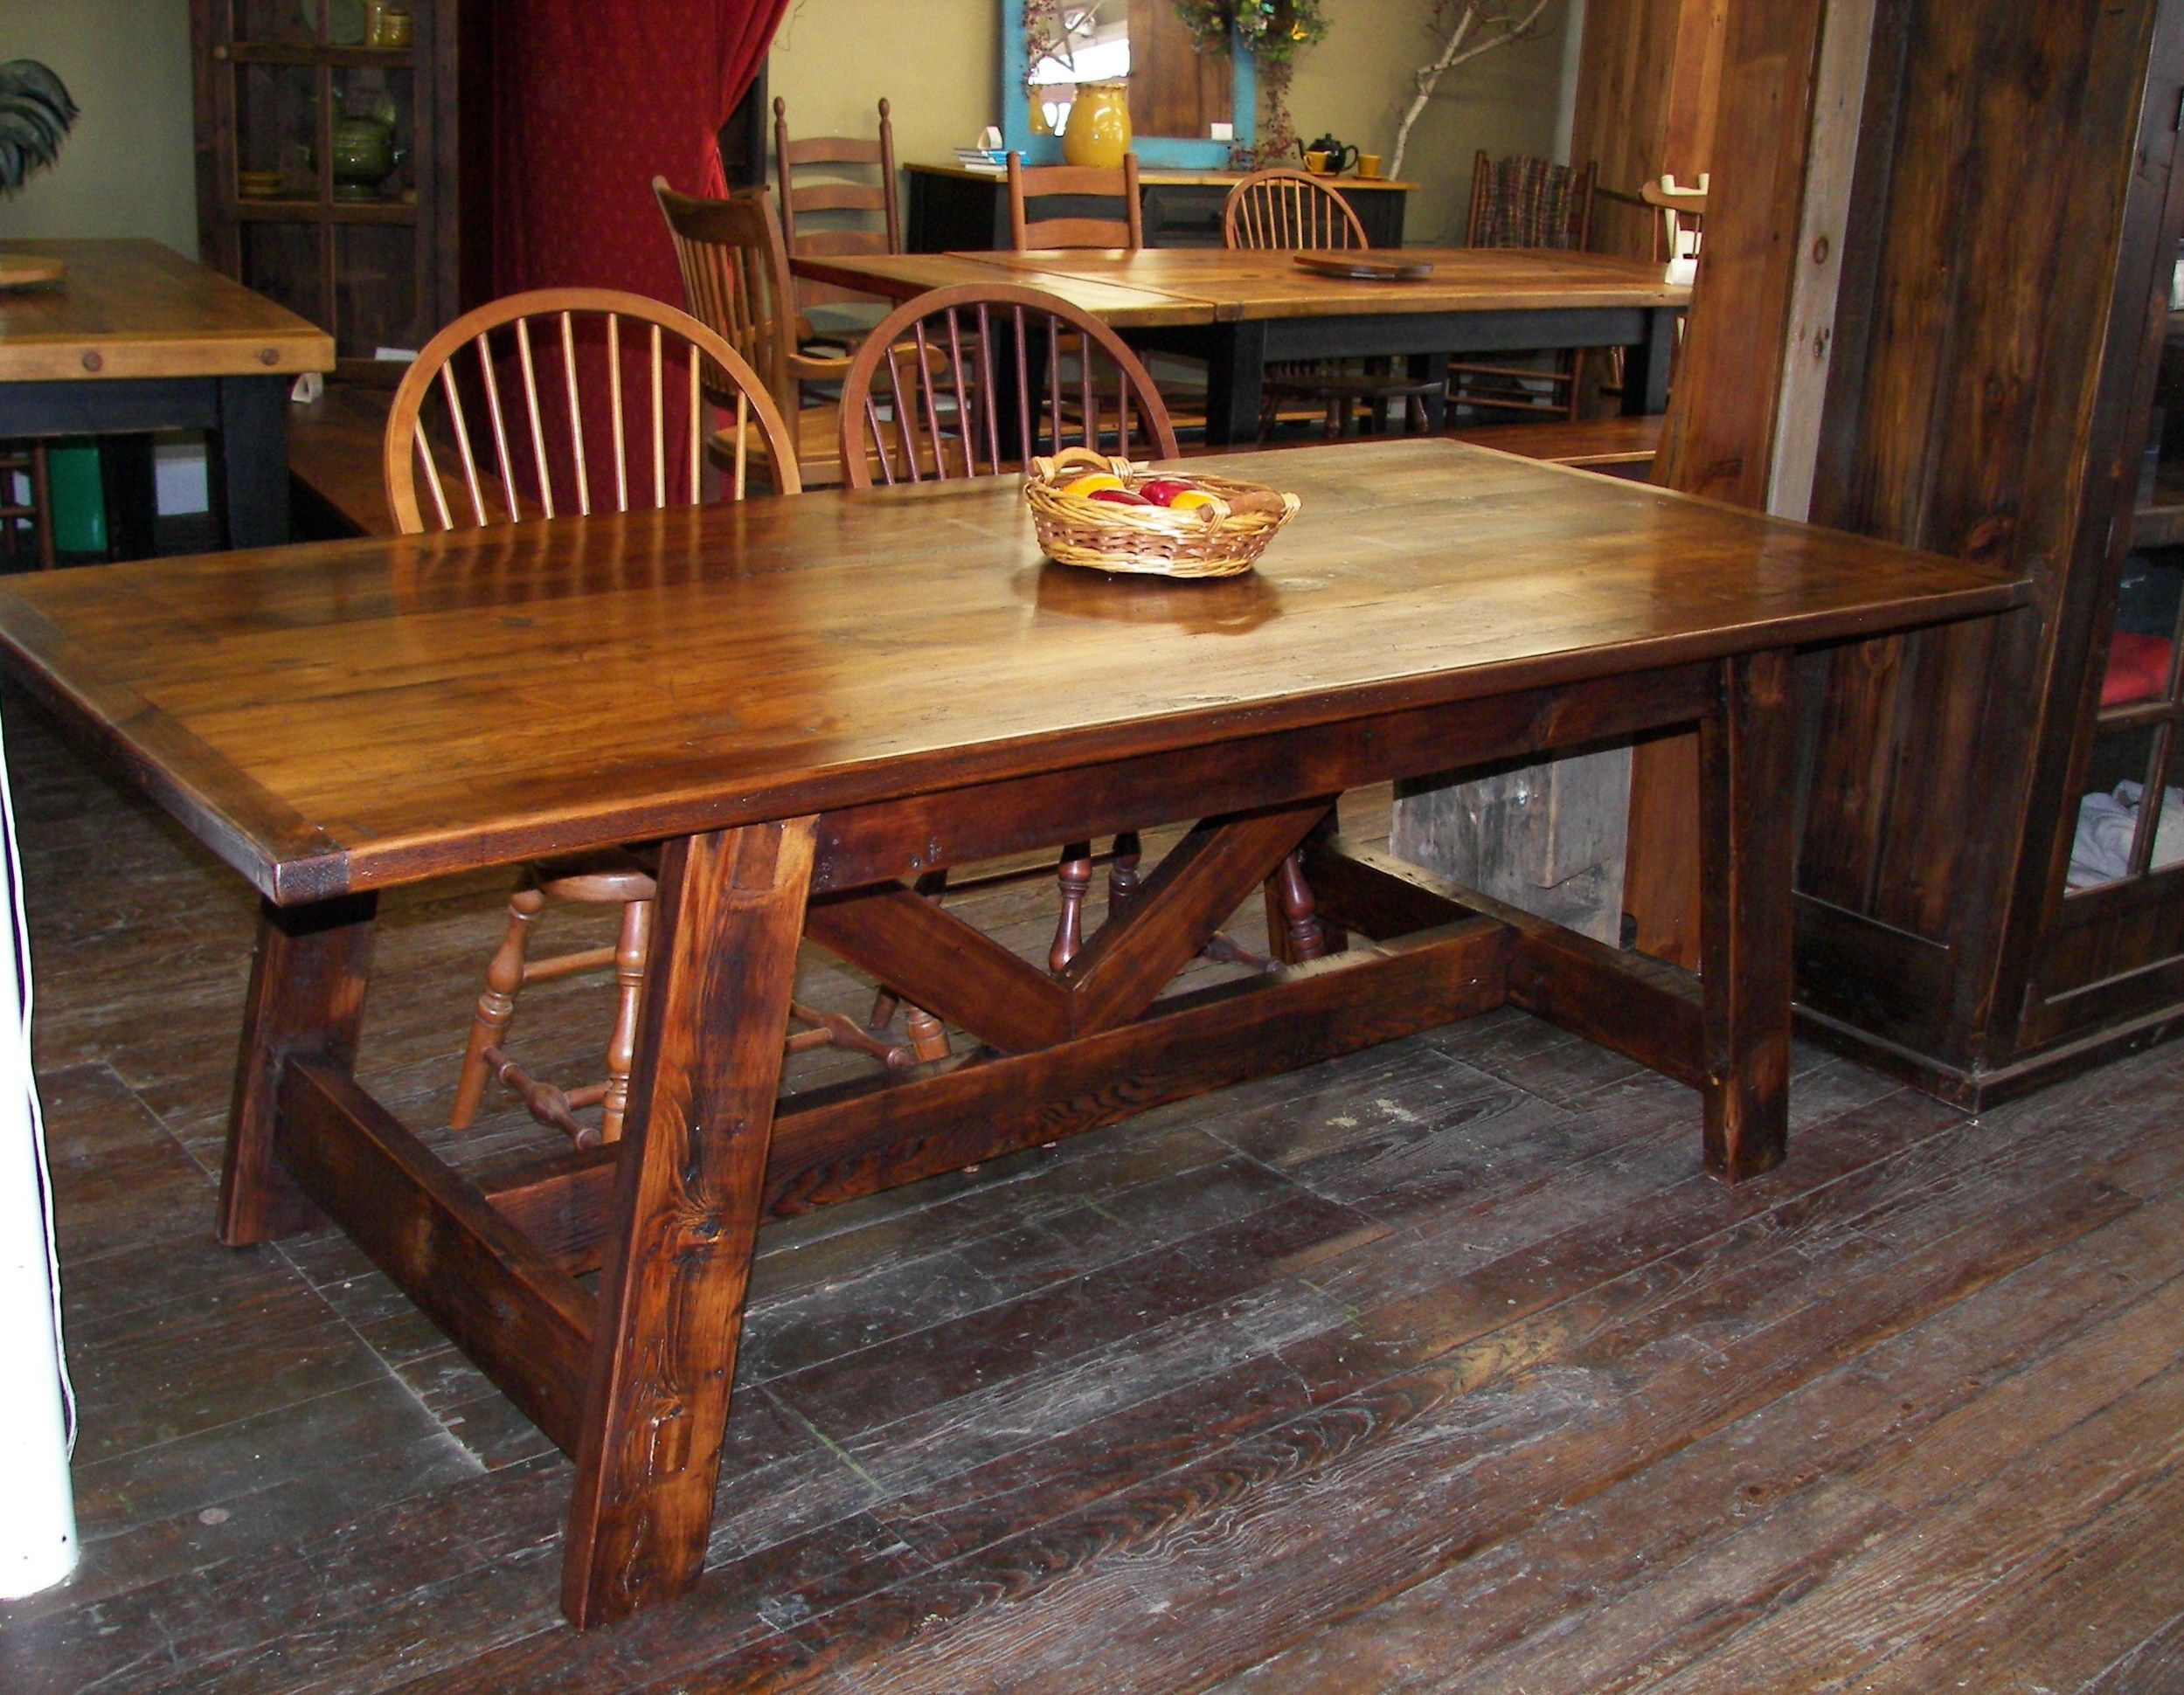 Reclaimed Barn Wood Sawbuck Trestle Farm Table   We Use Wood From  Dismantled Barns And Log